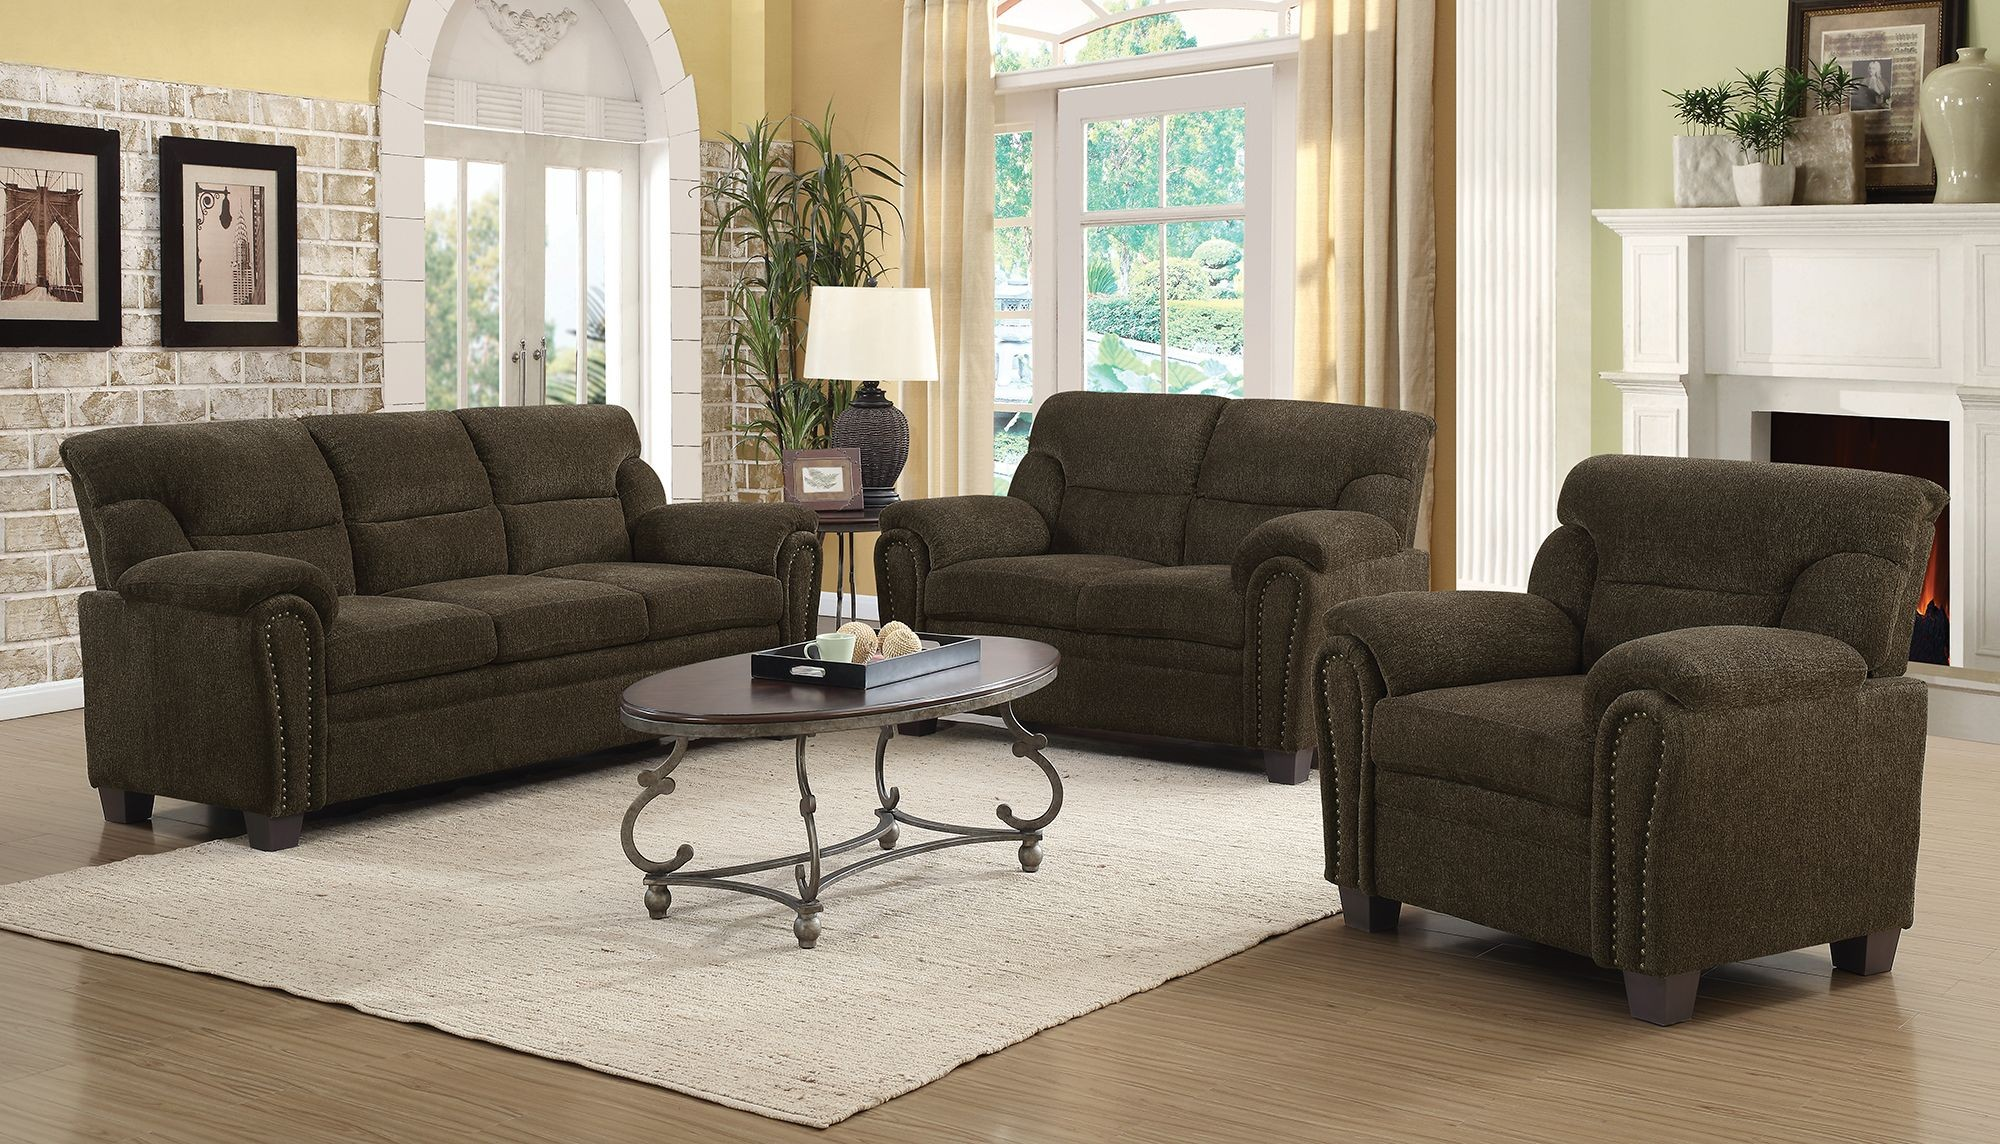 Clementine brown living room set 506571 72 coaster furniture for Front room furniture sets